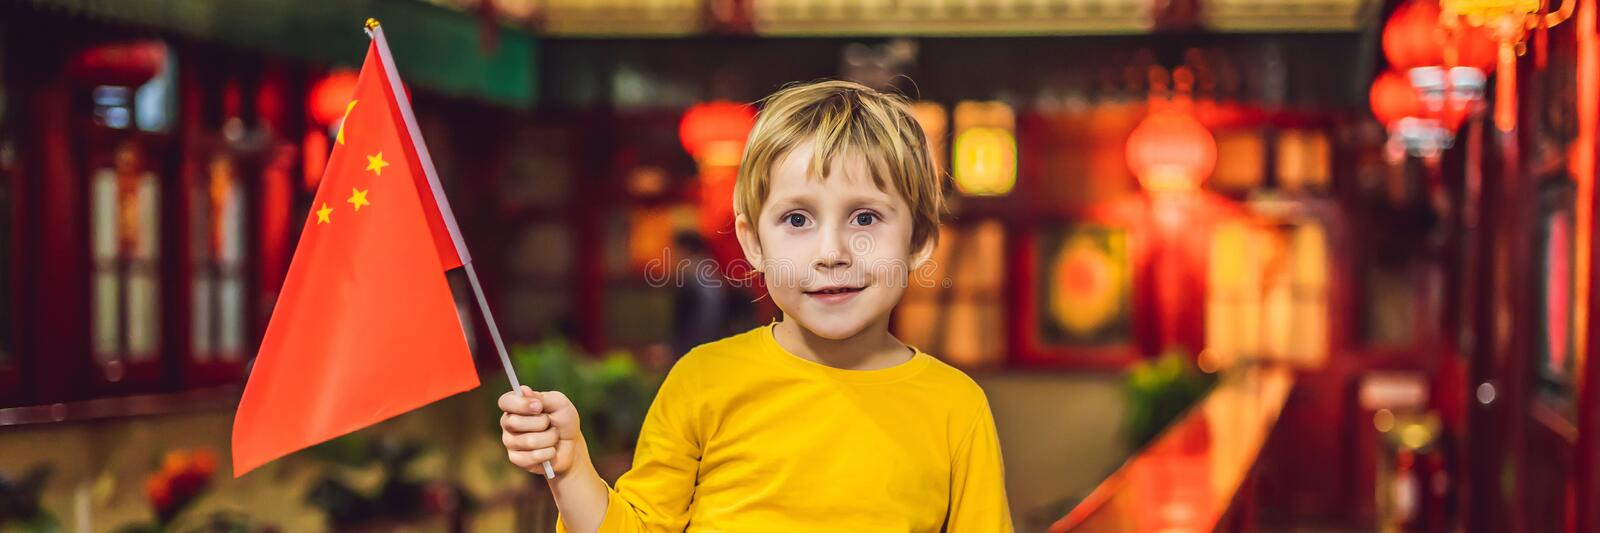 Enjoying vacation in China. Happy tourist boy with a Chinese flag on a Chinese background. Travel to China with kids stock photos